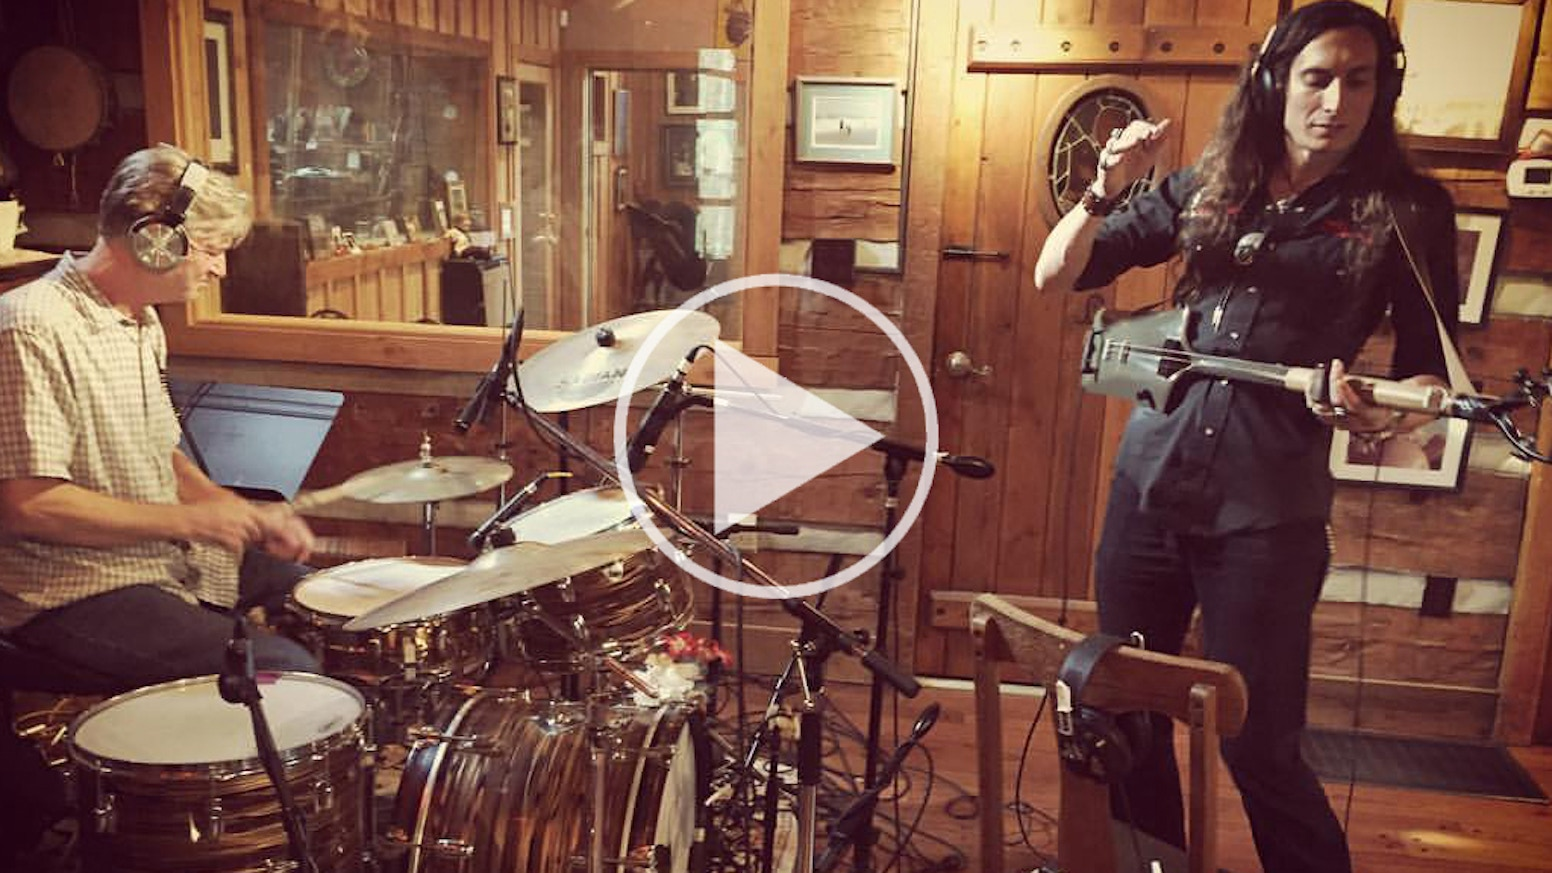 DRIVIN' IT DOWN: Full-band, Revved-Up, Electric Blues & Roots Album by Justin Johnson